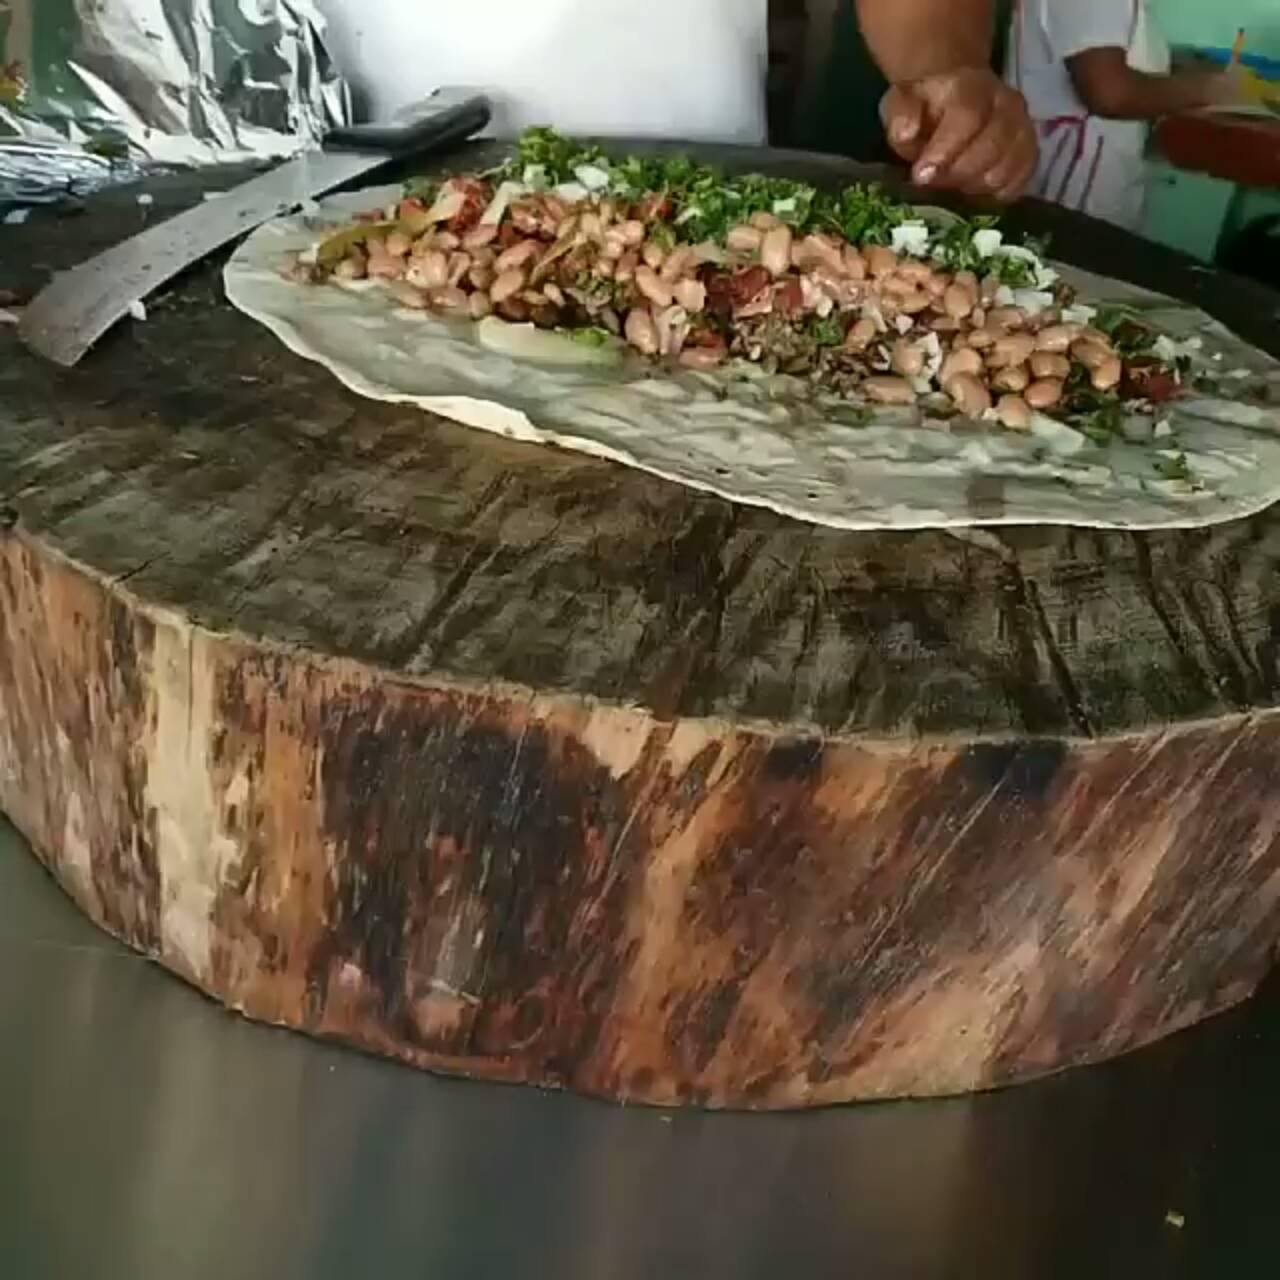 #bigburritomaking #addingtoppings